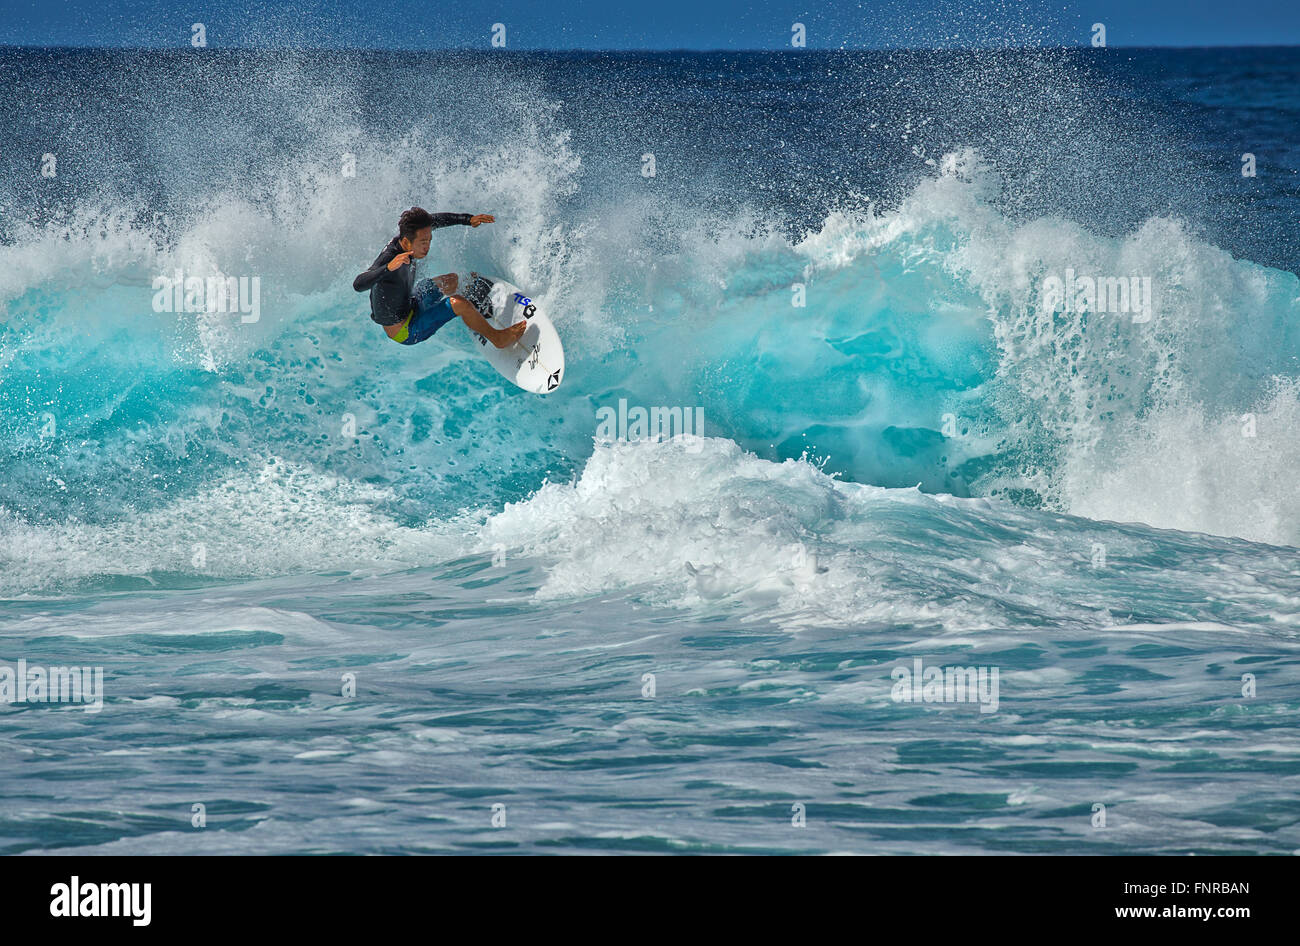 A surfer tackles the notoriously difficult Pipeline surf break. in Oahu, Hawaii. - Stock Image